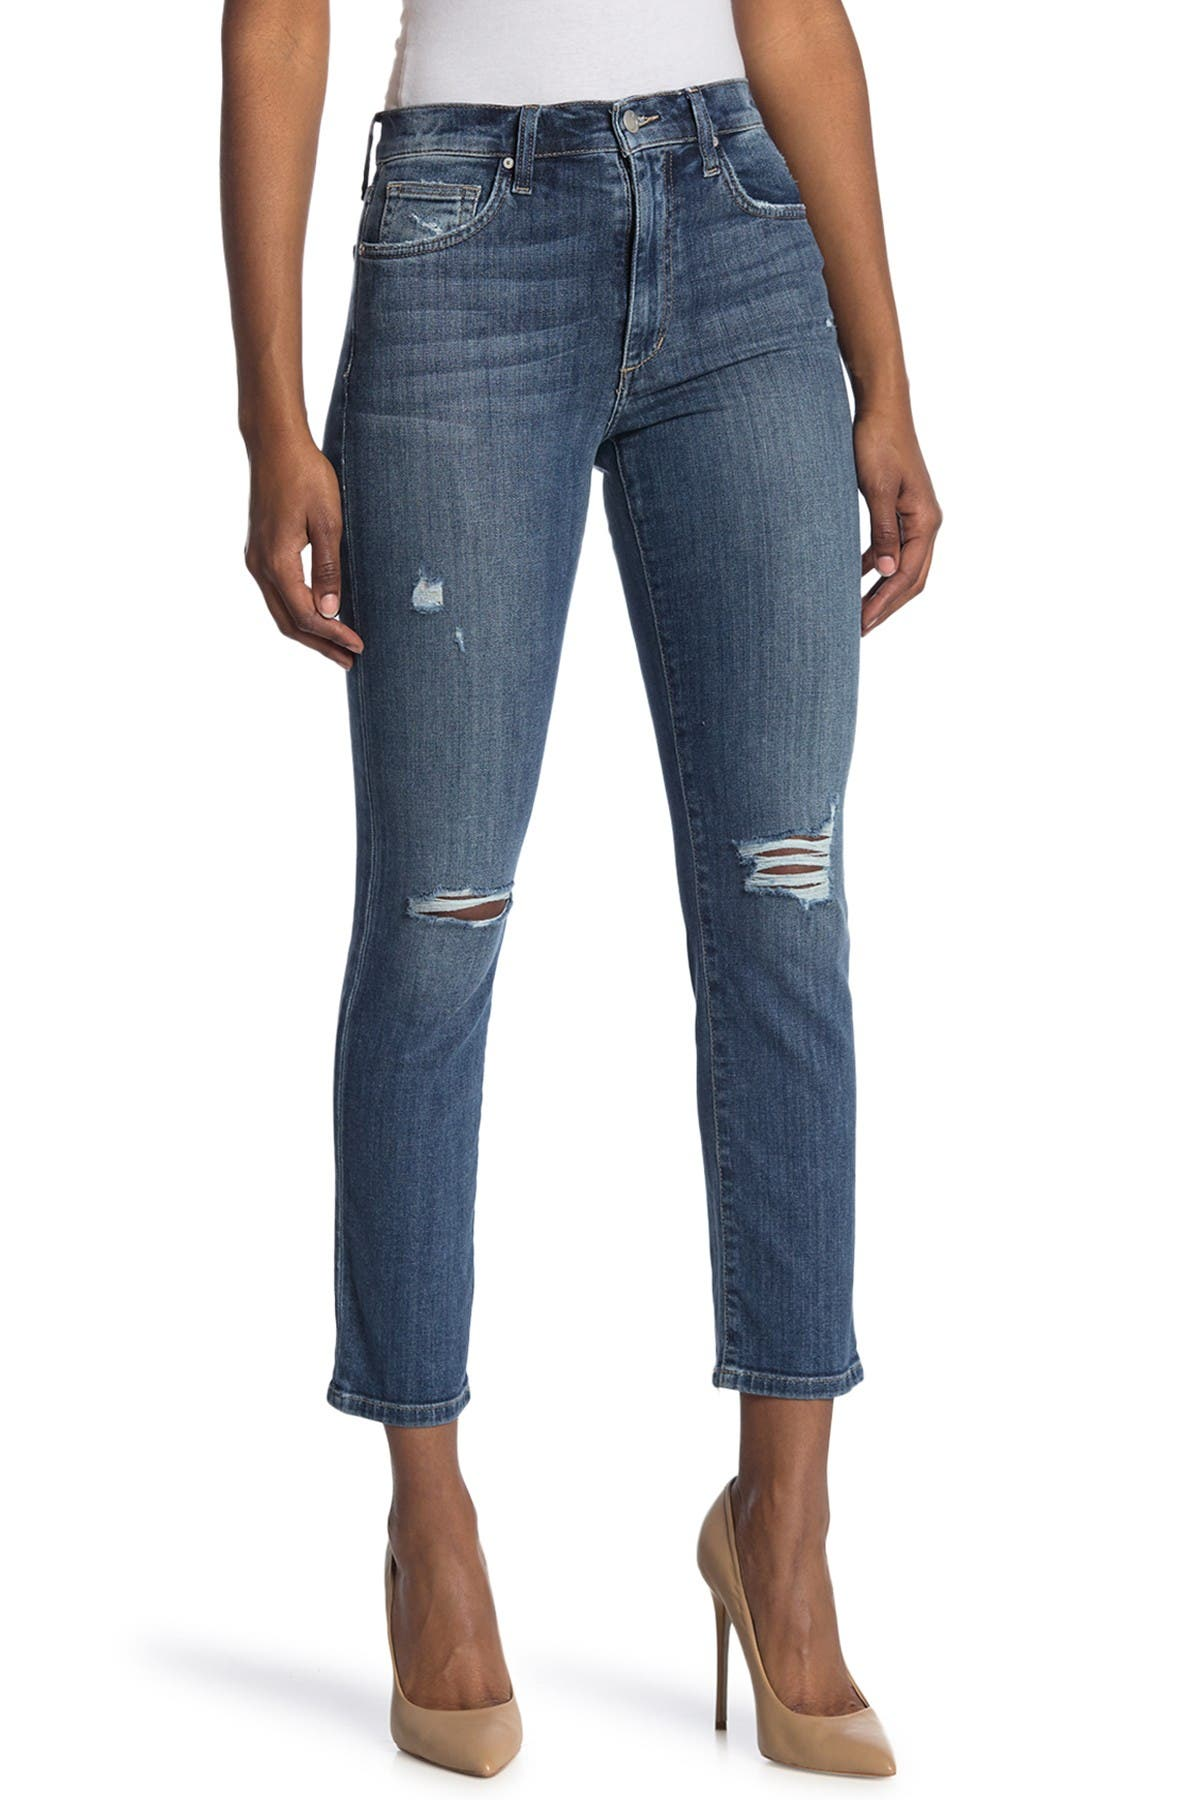 Image of Joe's Jeans High Rise Distressed Straight Ankle Jeans